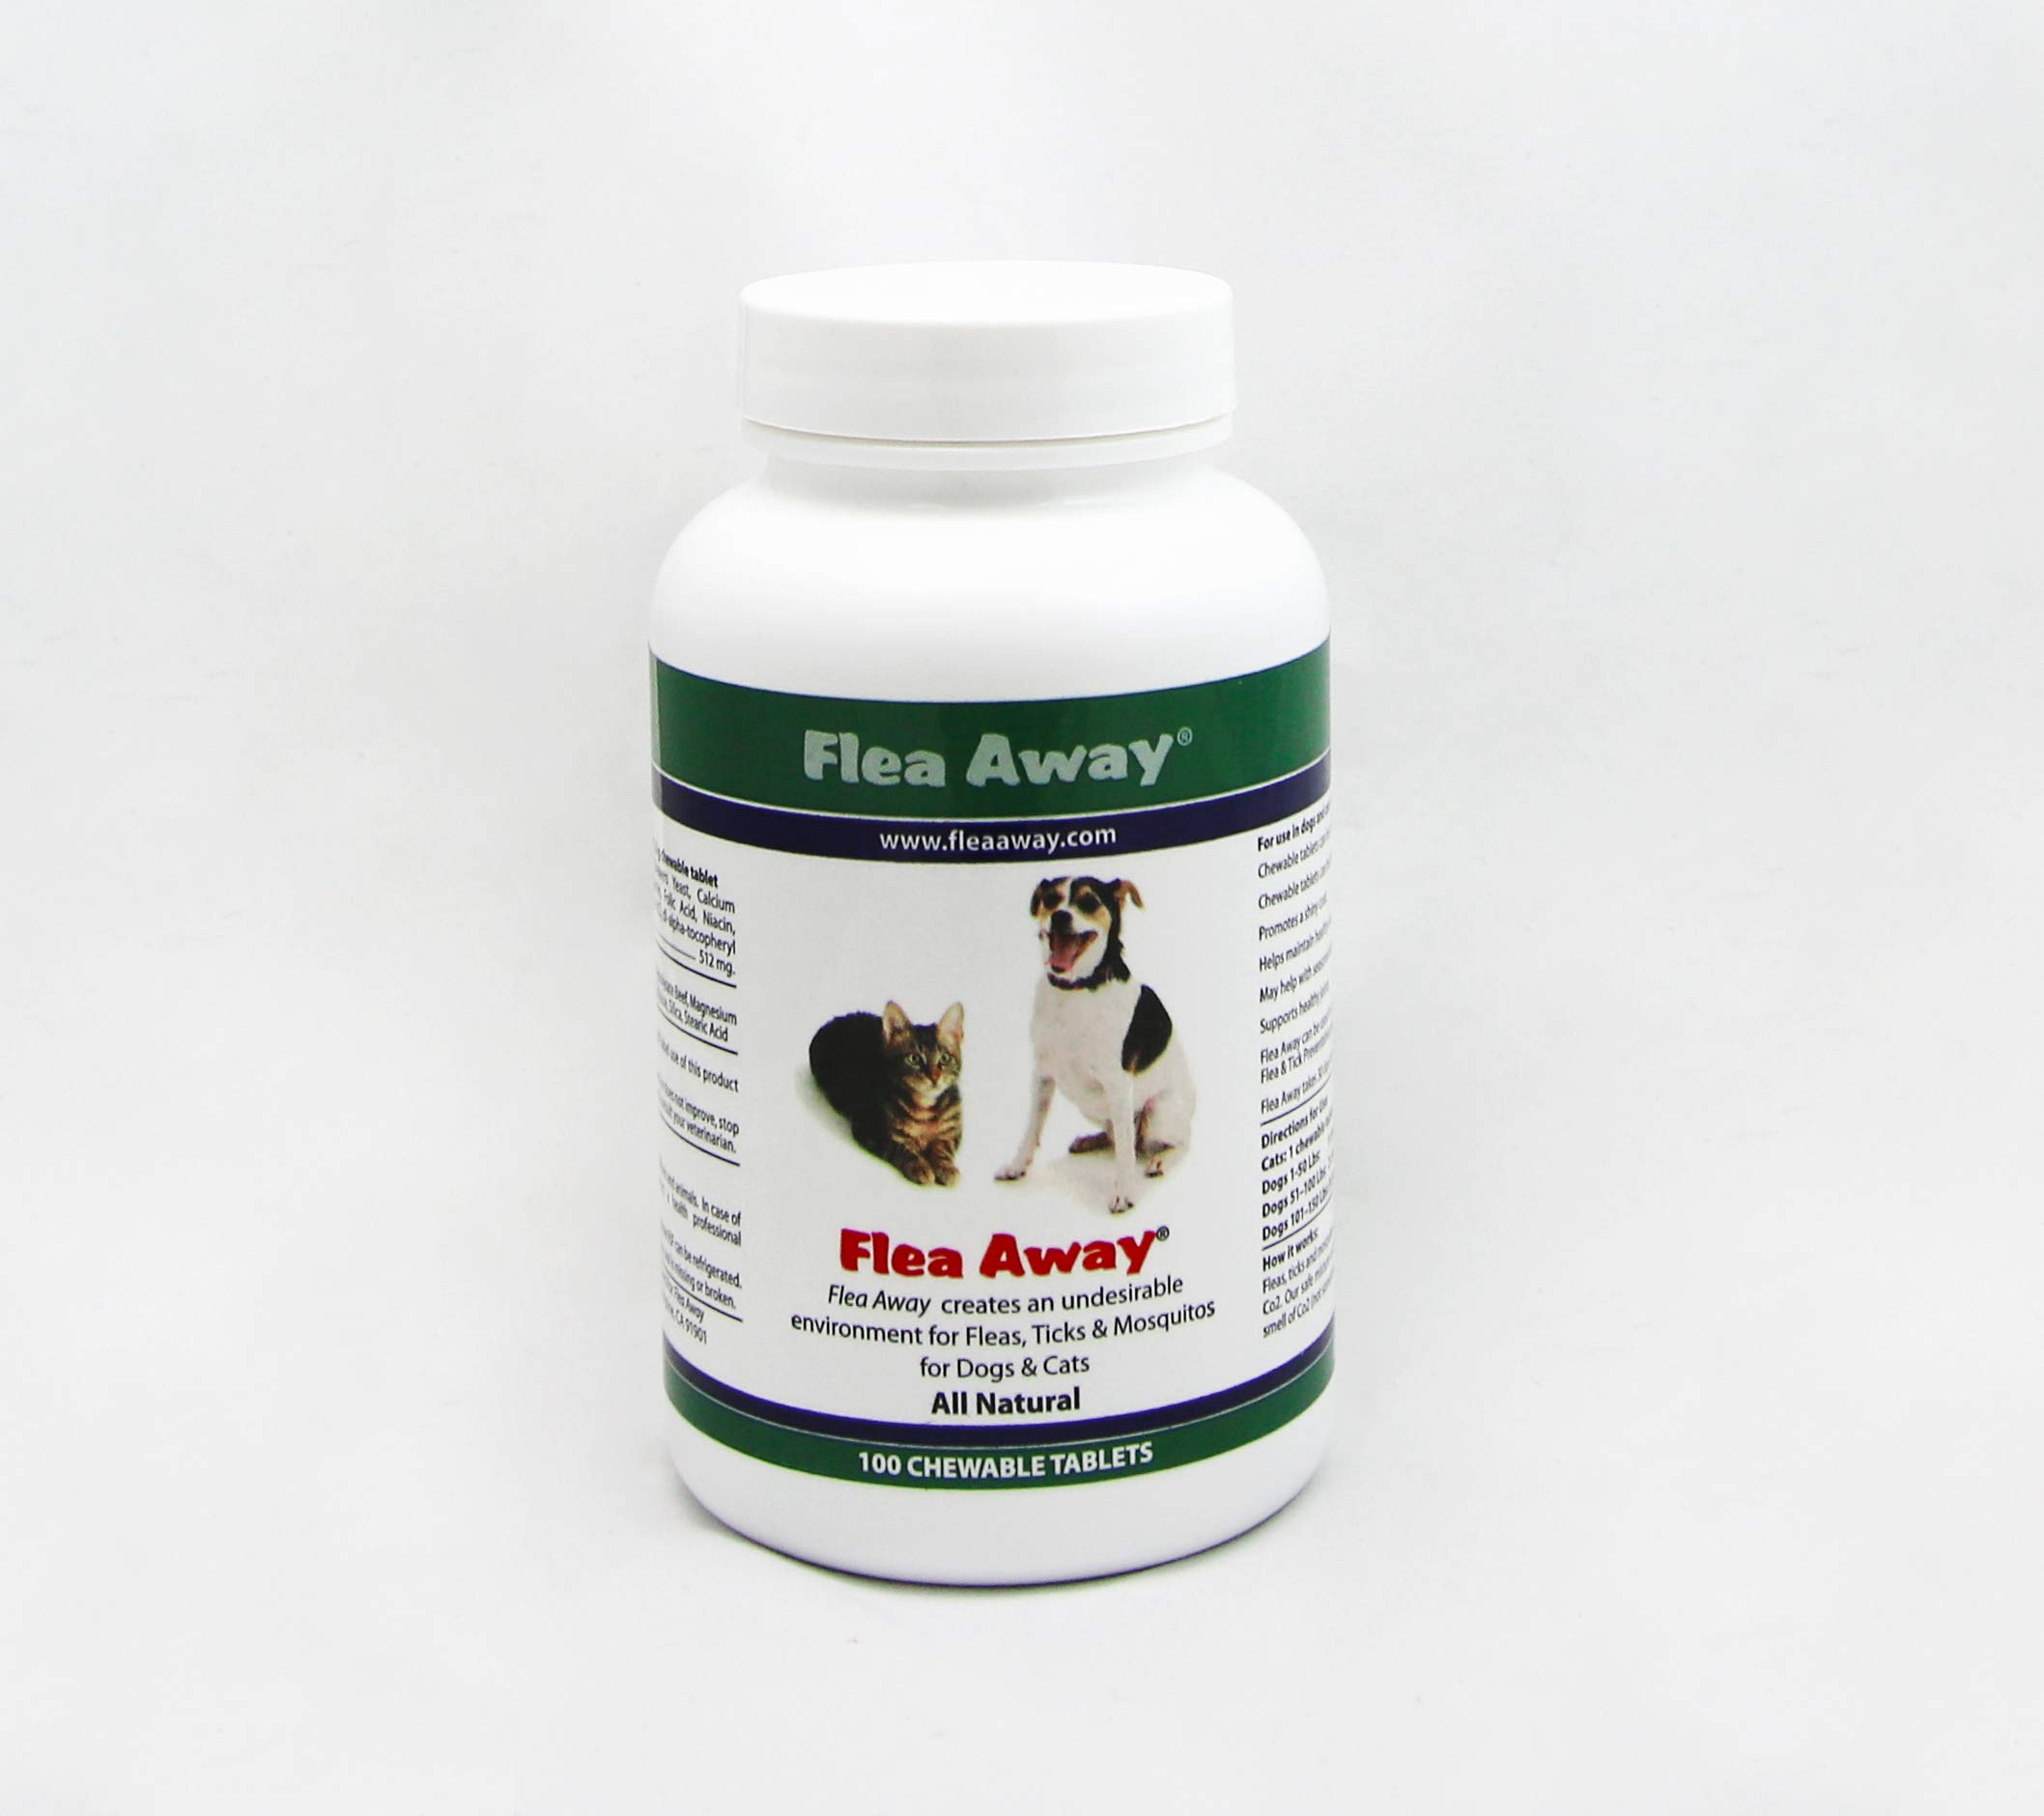 Flea Away All Natural Flea, Tick, Mosquito Repellent for Dogs & Cats, 100 Chewable Tablets, Single by Flea Away